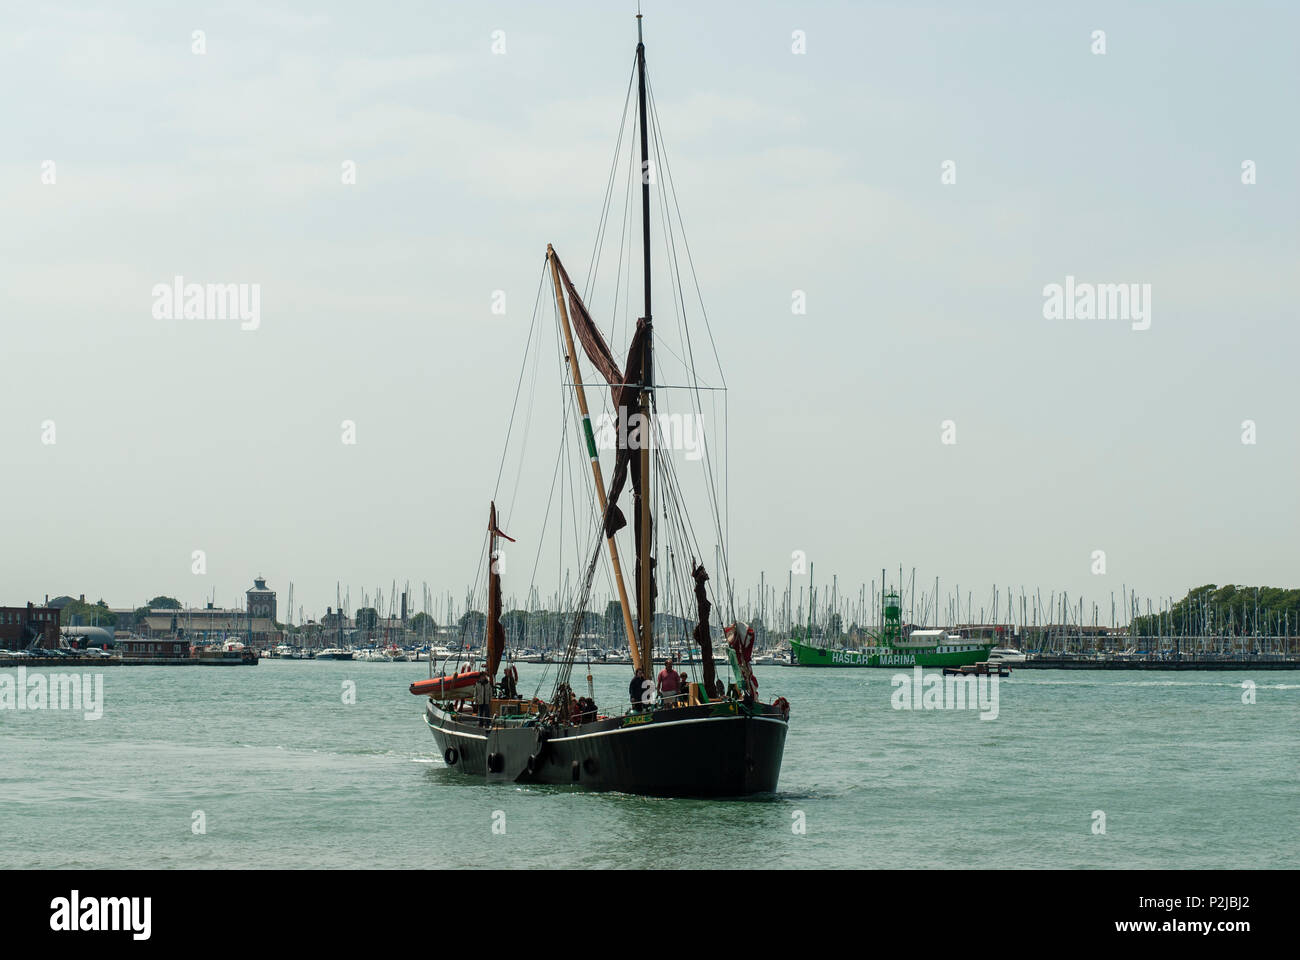 View of an old Thames barge, Gunwharf Quays, Portsmouth, UK Stock Photo